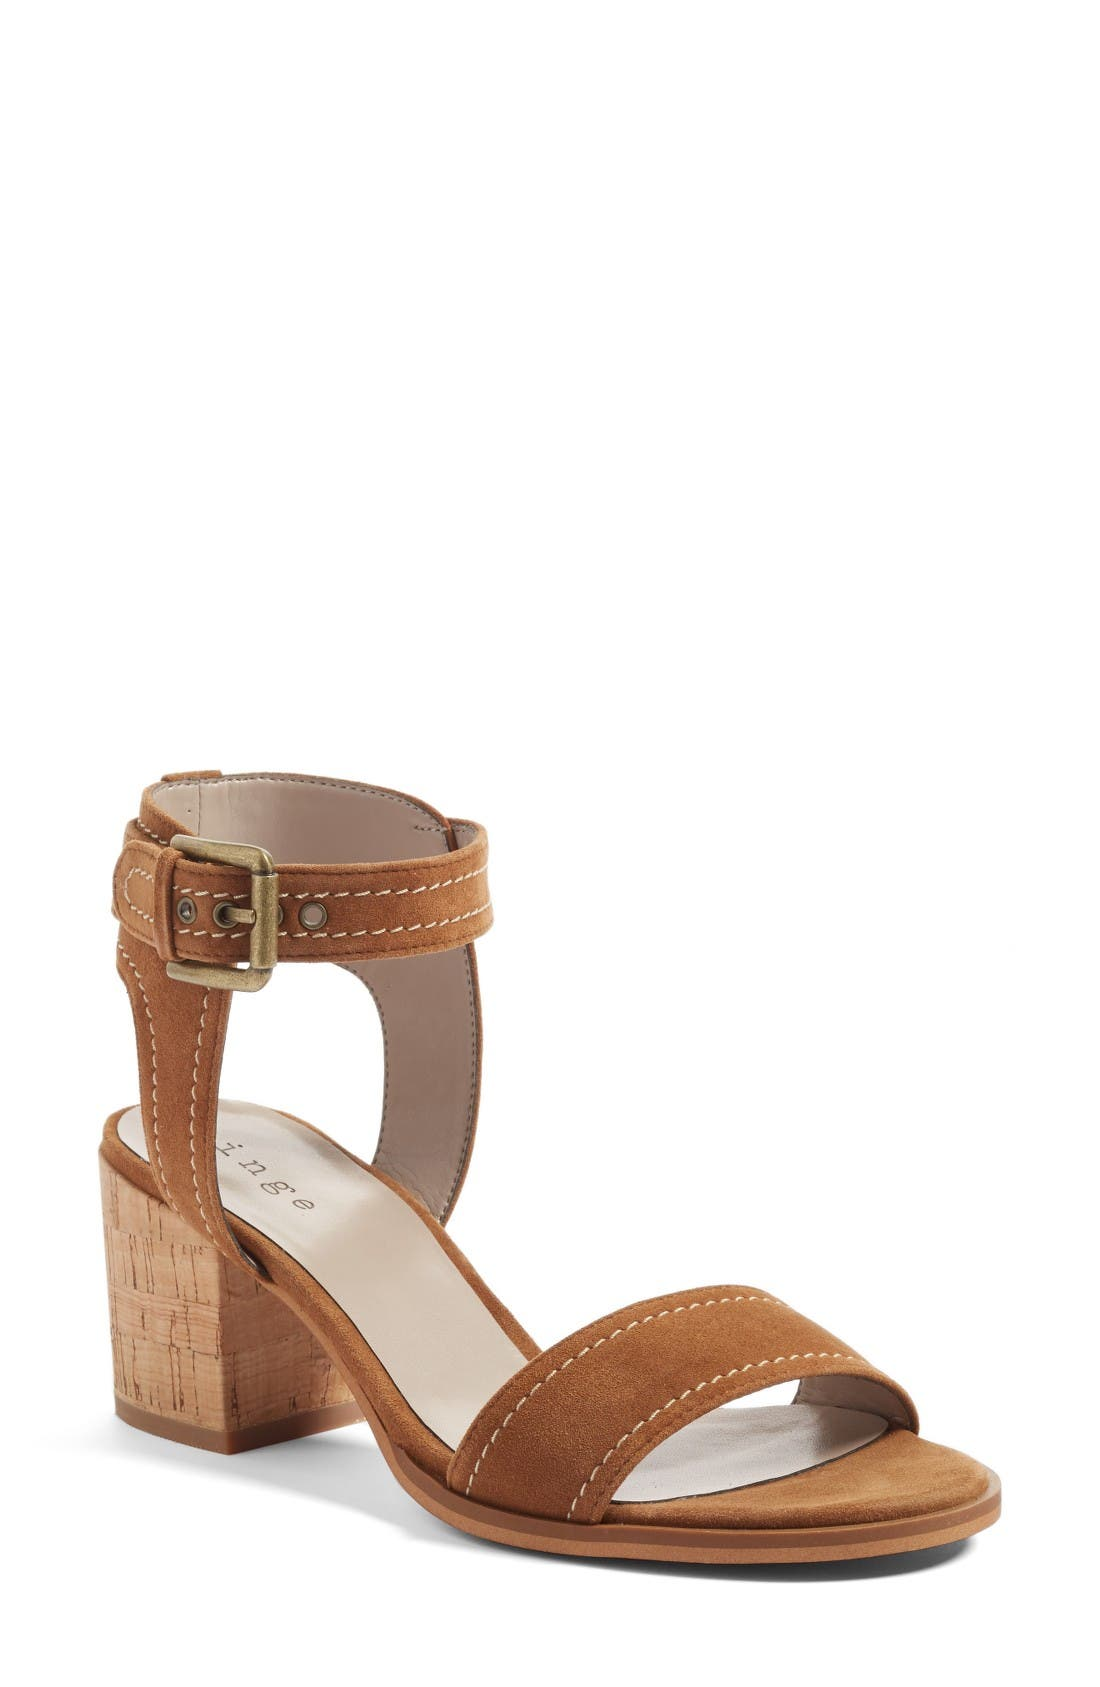 Dylan Block Heel Sandal,                         Main,                         color, Brown Suede